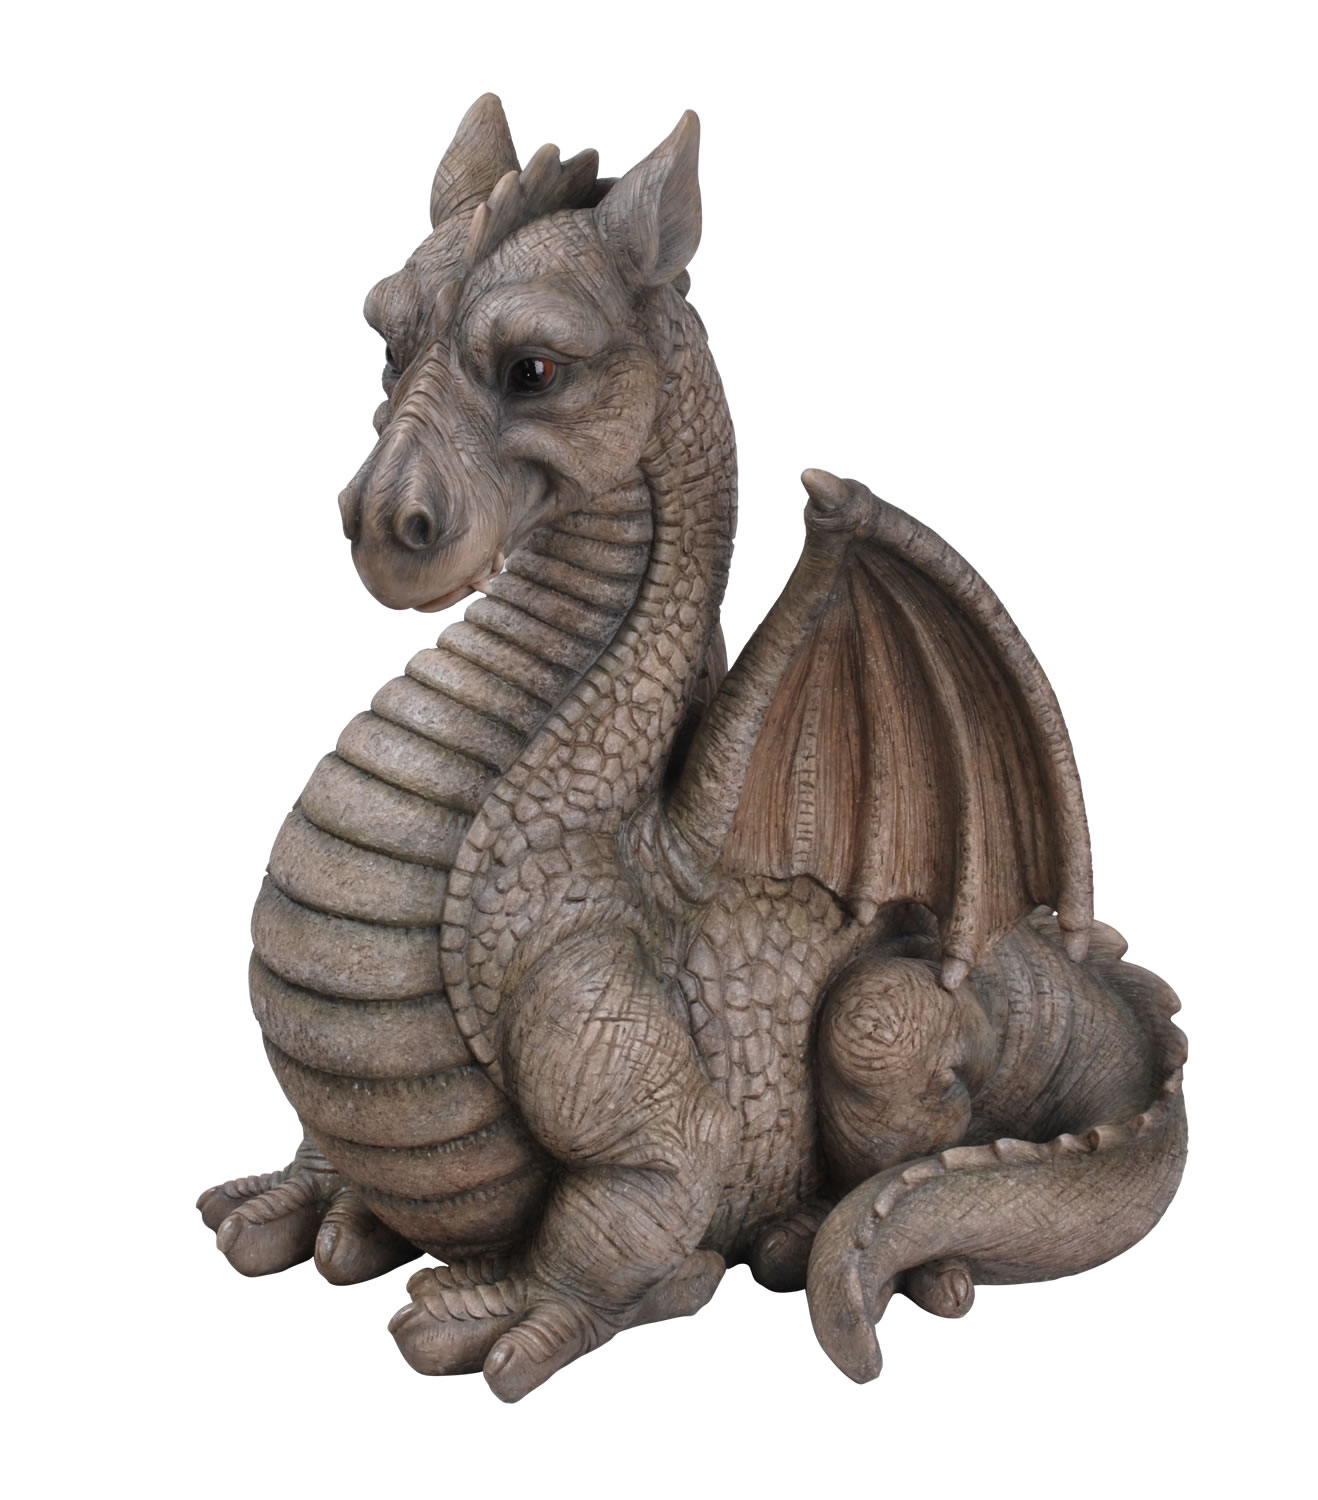 Grey Winged Dragon Resin Garden Ornament 8999 Garden4Less